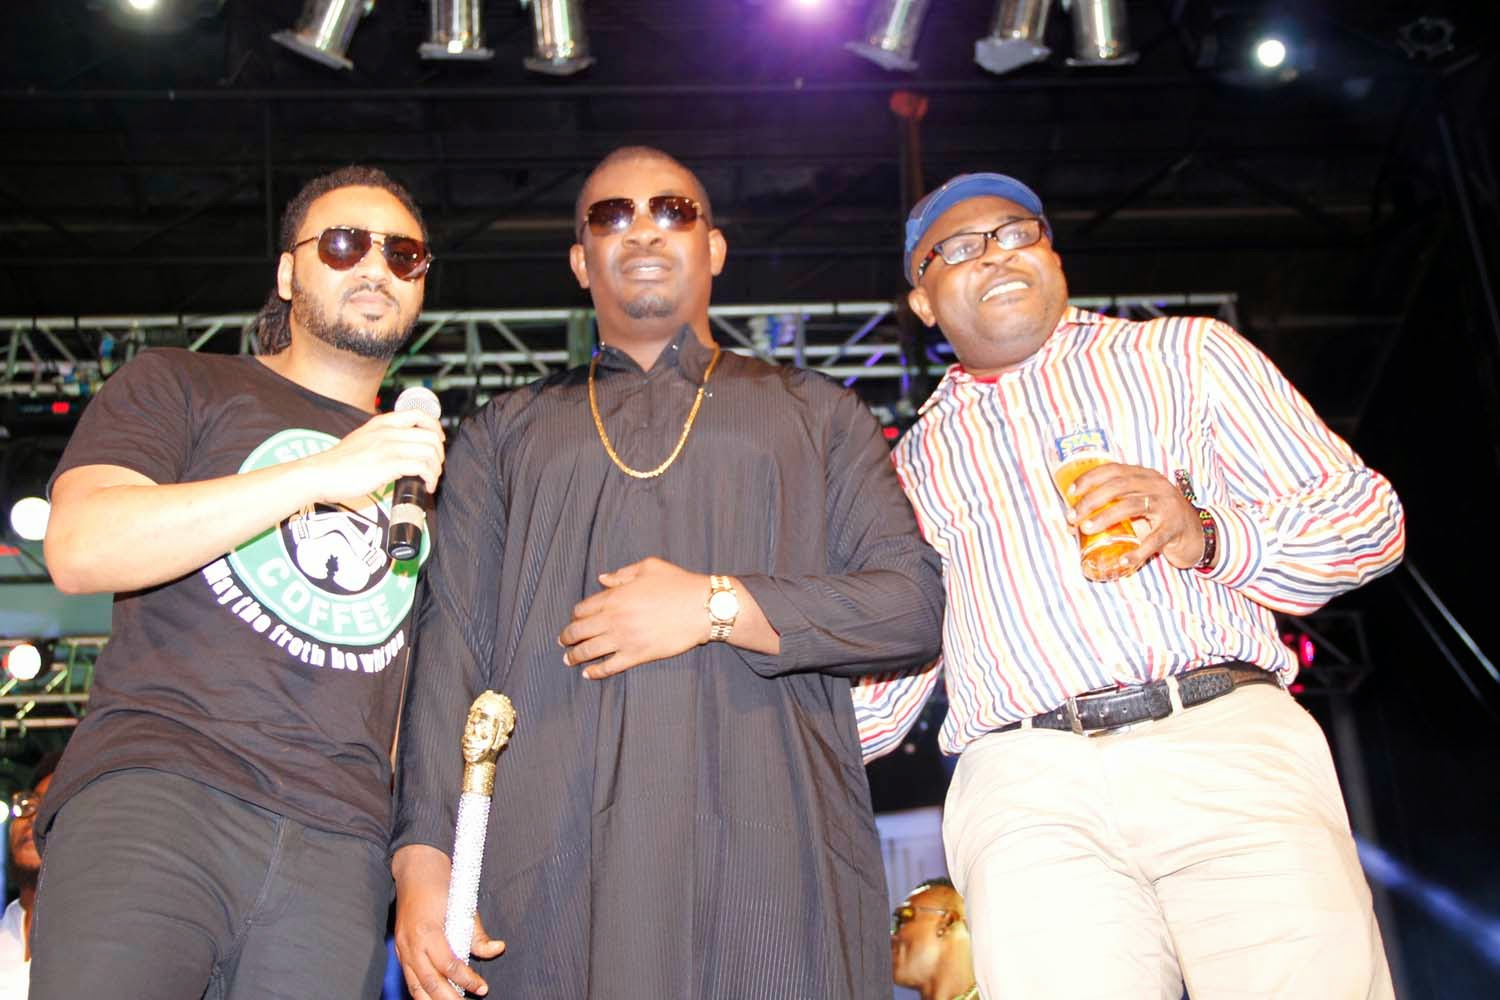 People Star Festac Explosion 77 Vol 2 Live In London